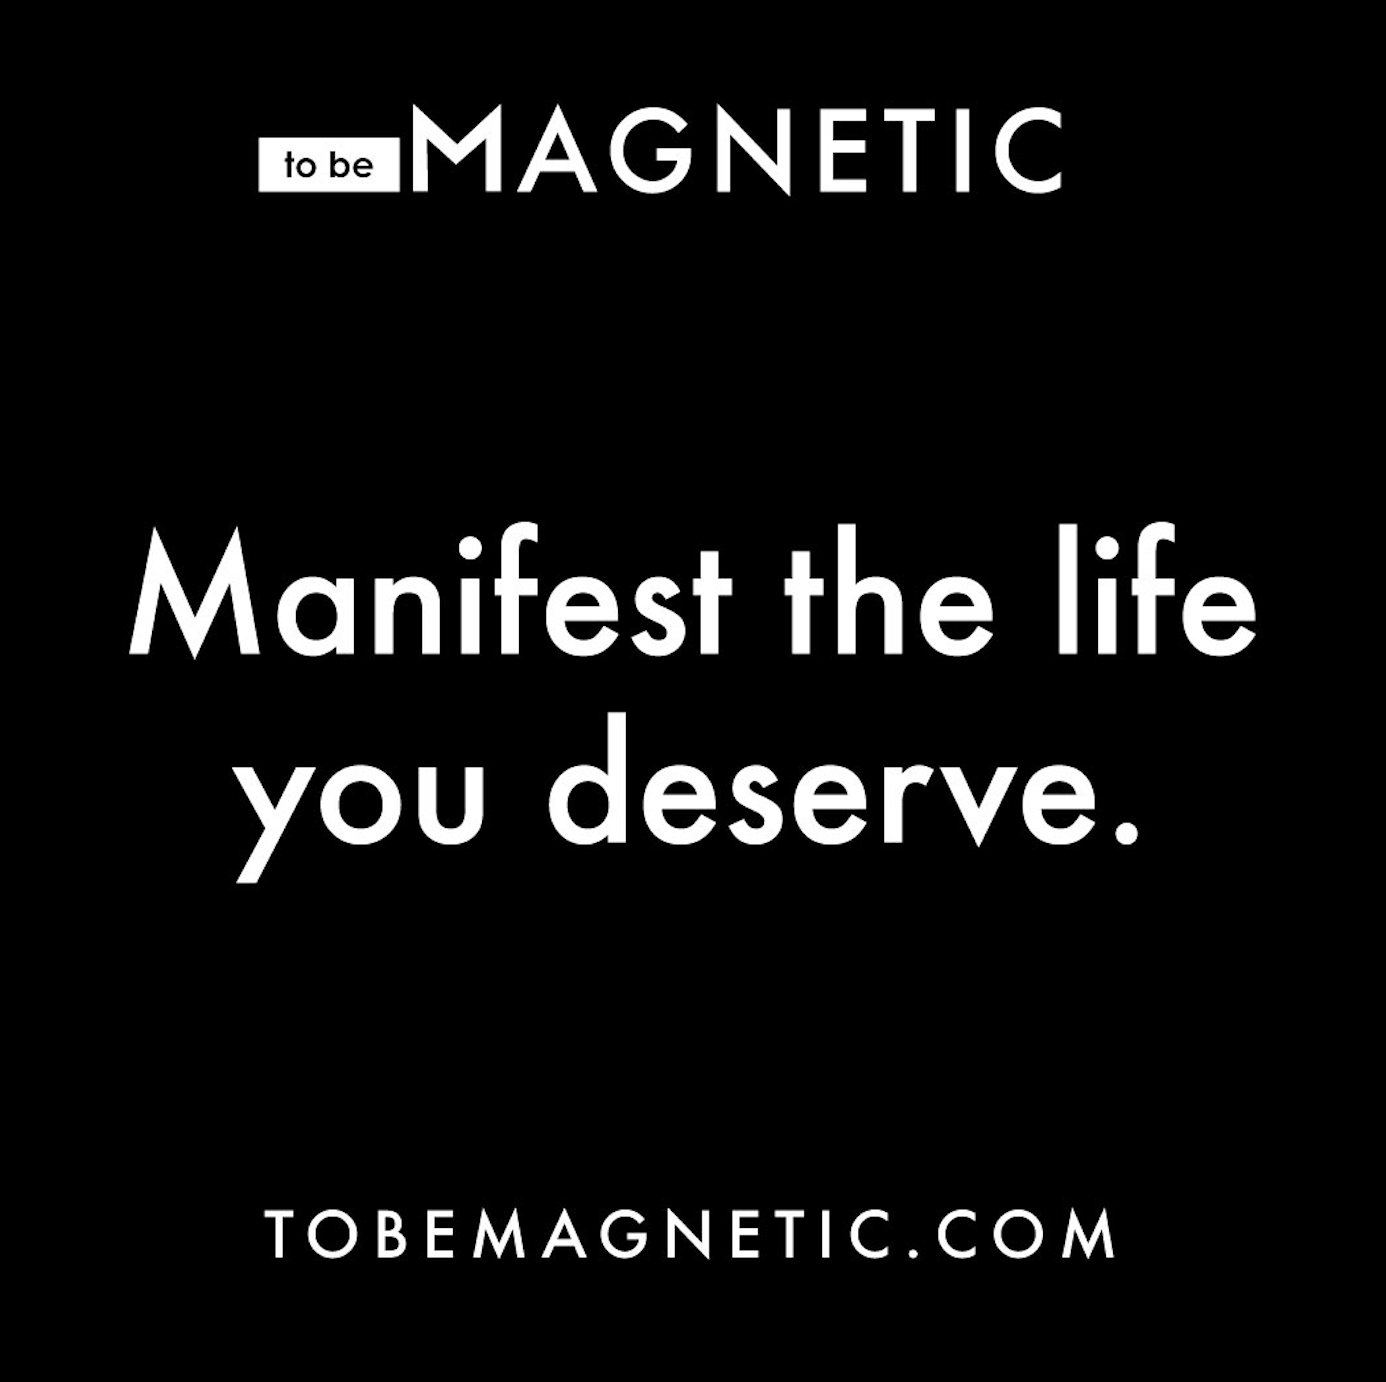 What are you looking to manifest? Get $20 off a year long membership at www.tobemagnetic.com by using code: JENNIFERYOUNG